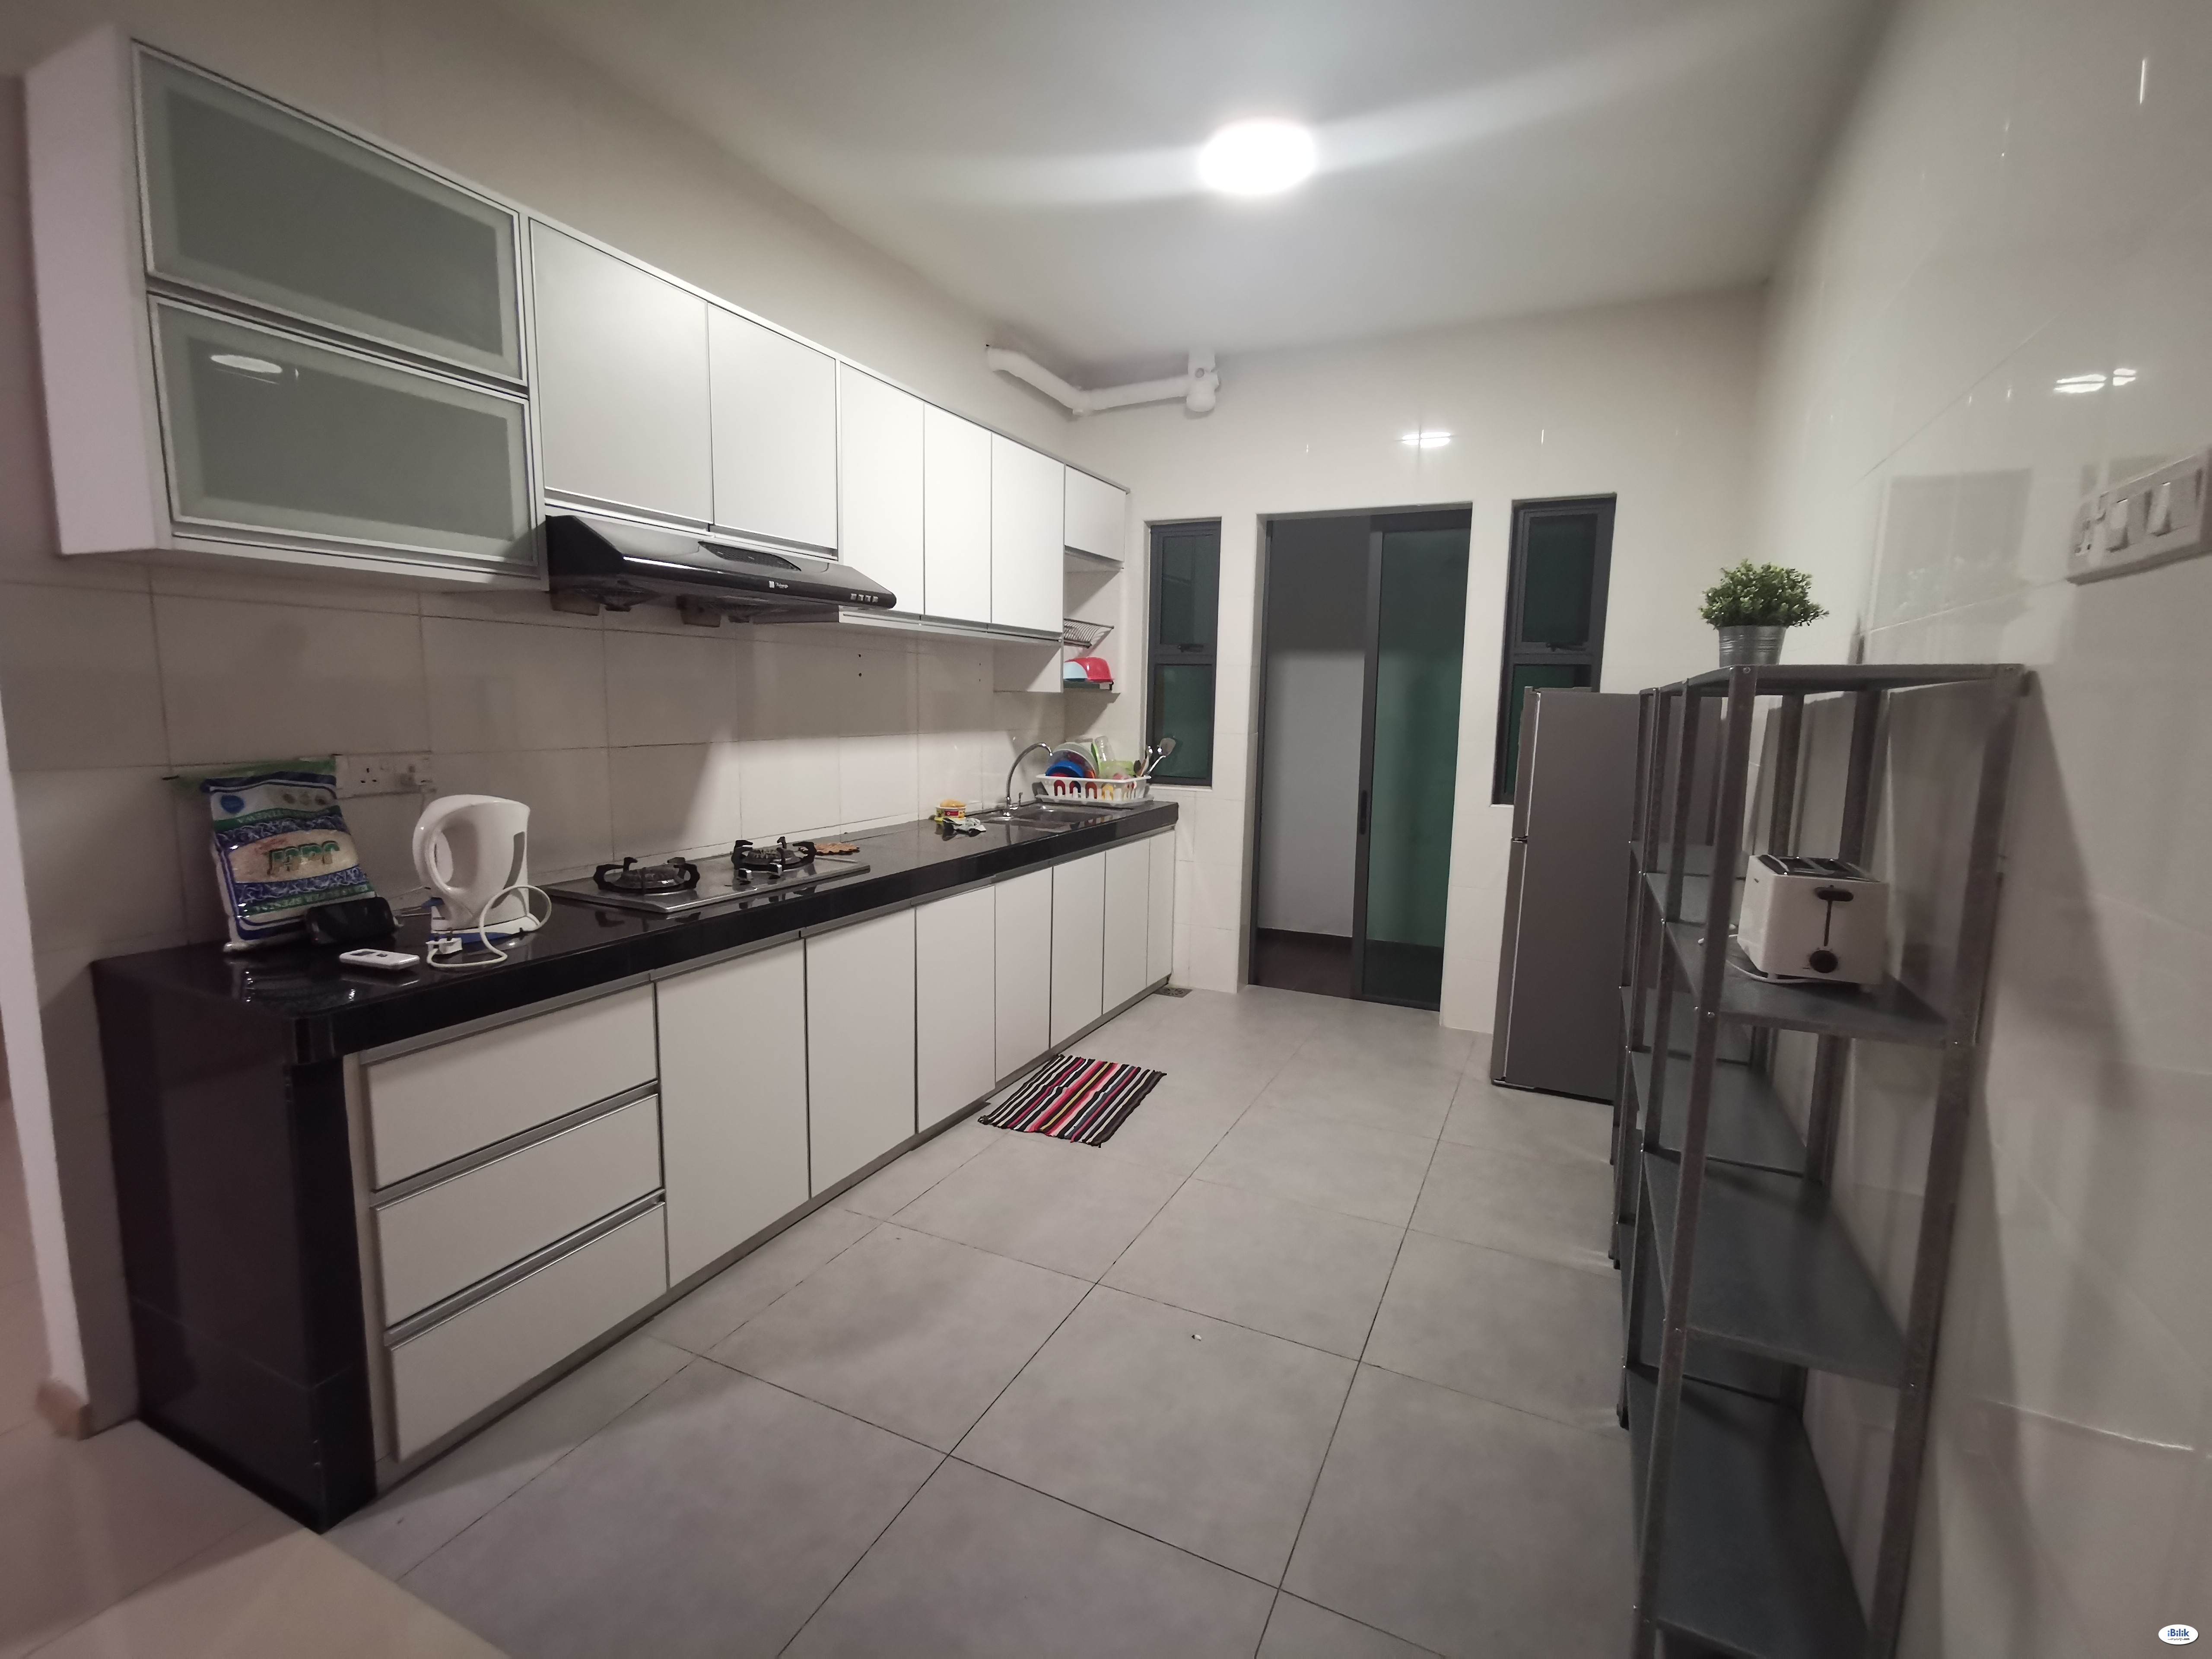 Big Sales for Medium Room at Seksyen 14, Shah Alam